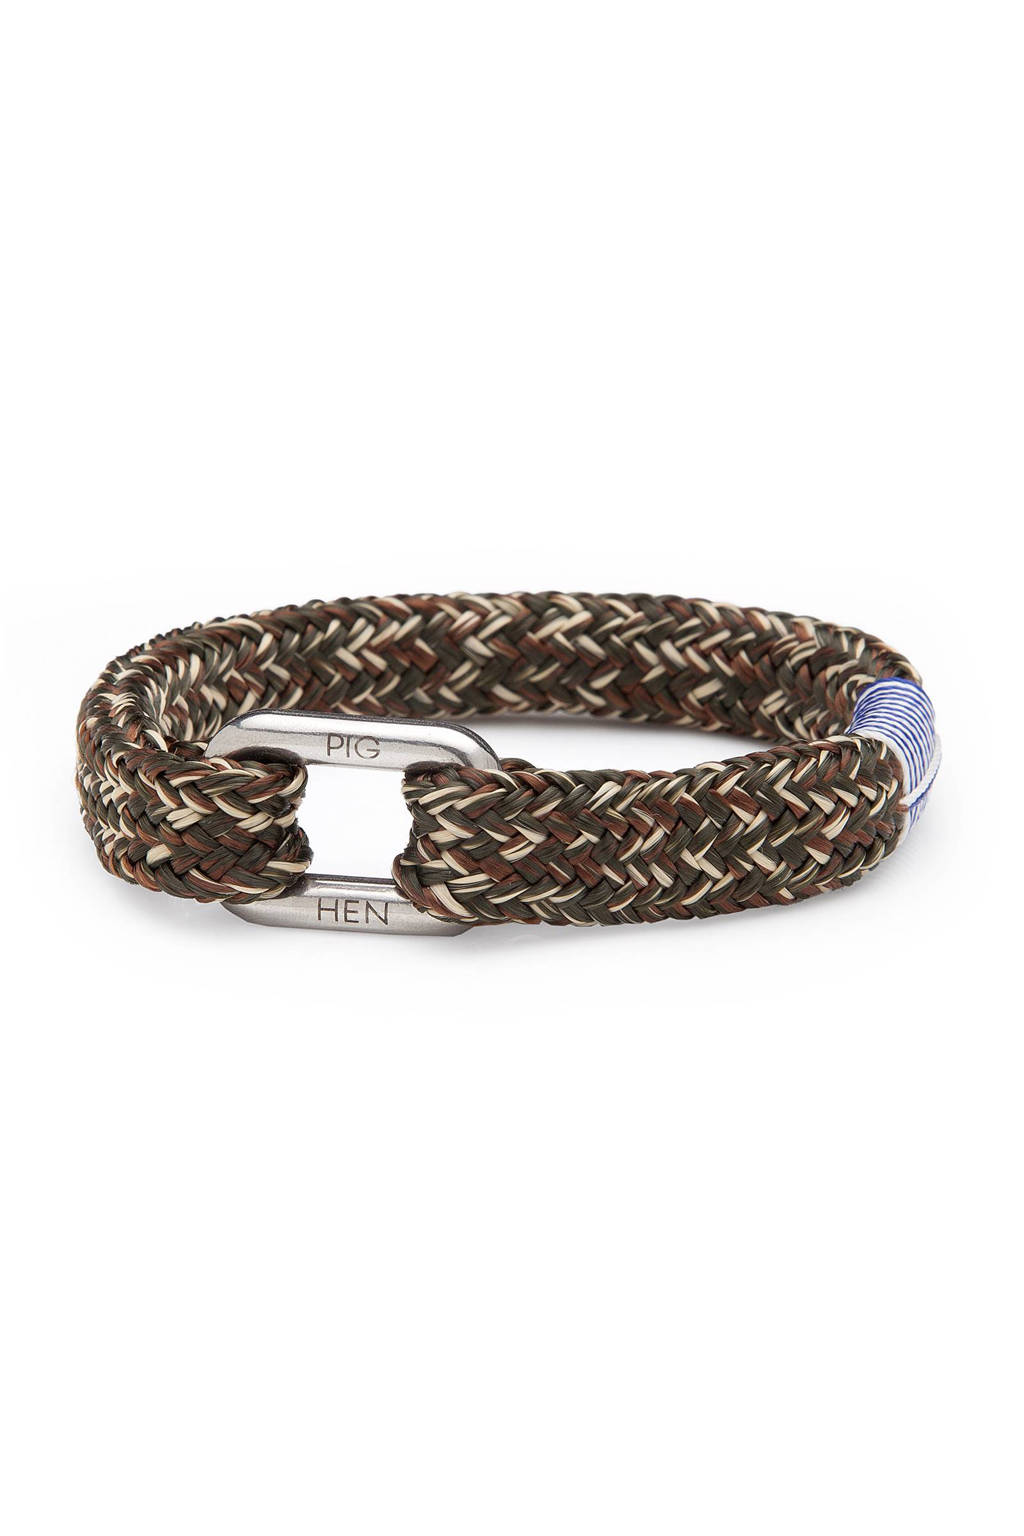 Pig & Hen armband Limp Lee, Army/brown/sand